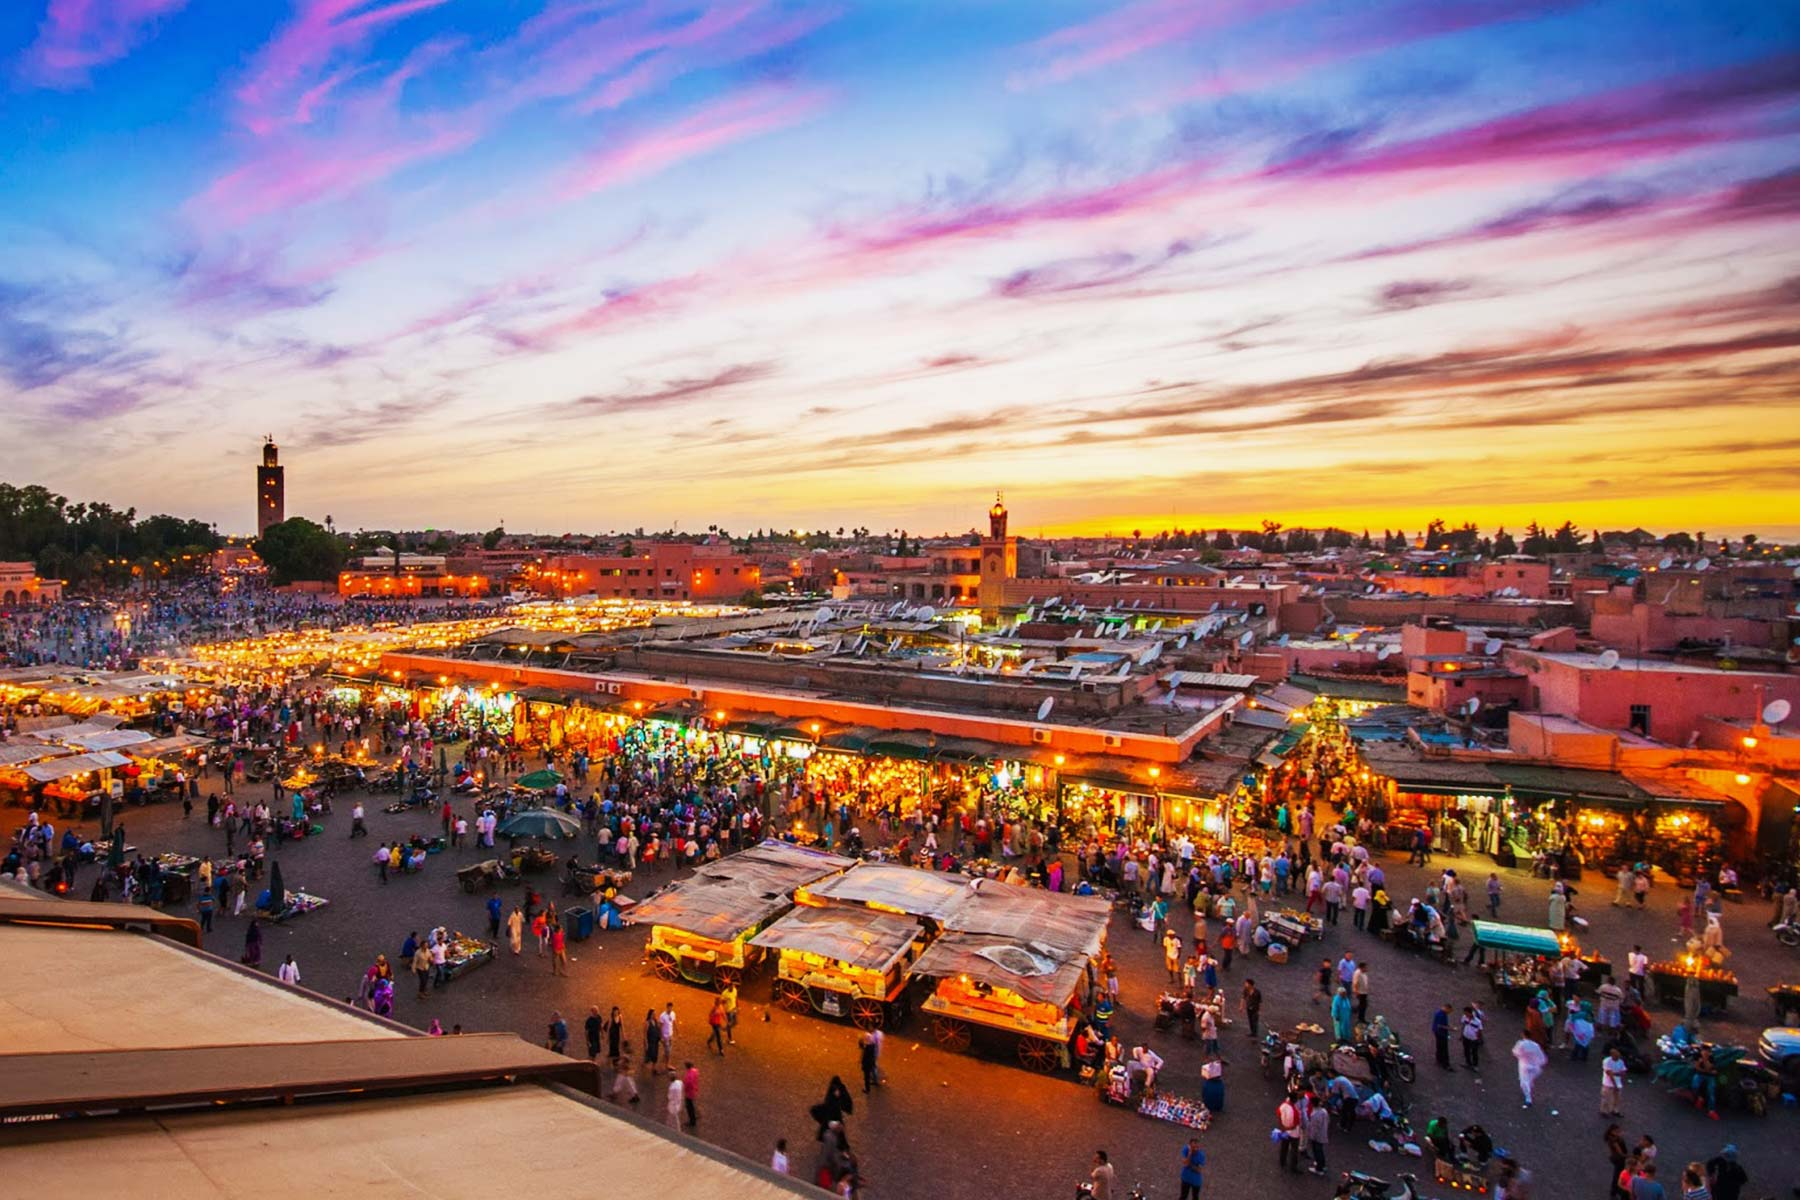 Maroc : Marrakech desert fes days nights morocco key travel